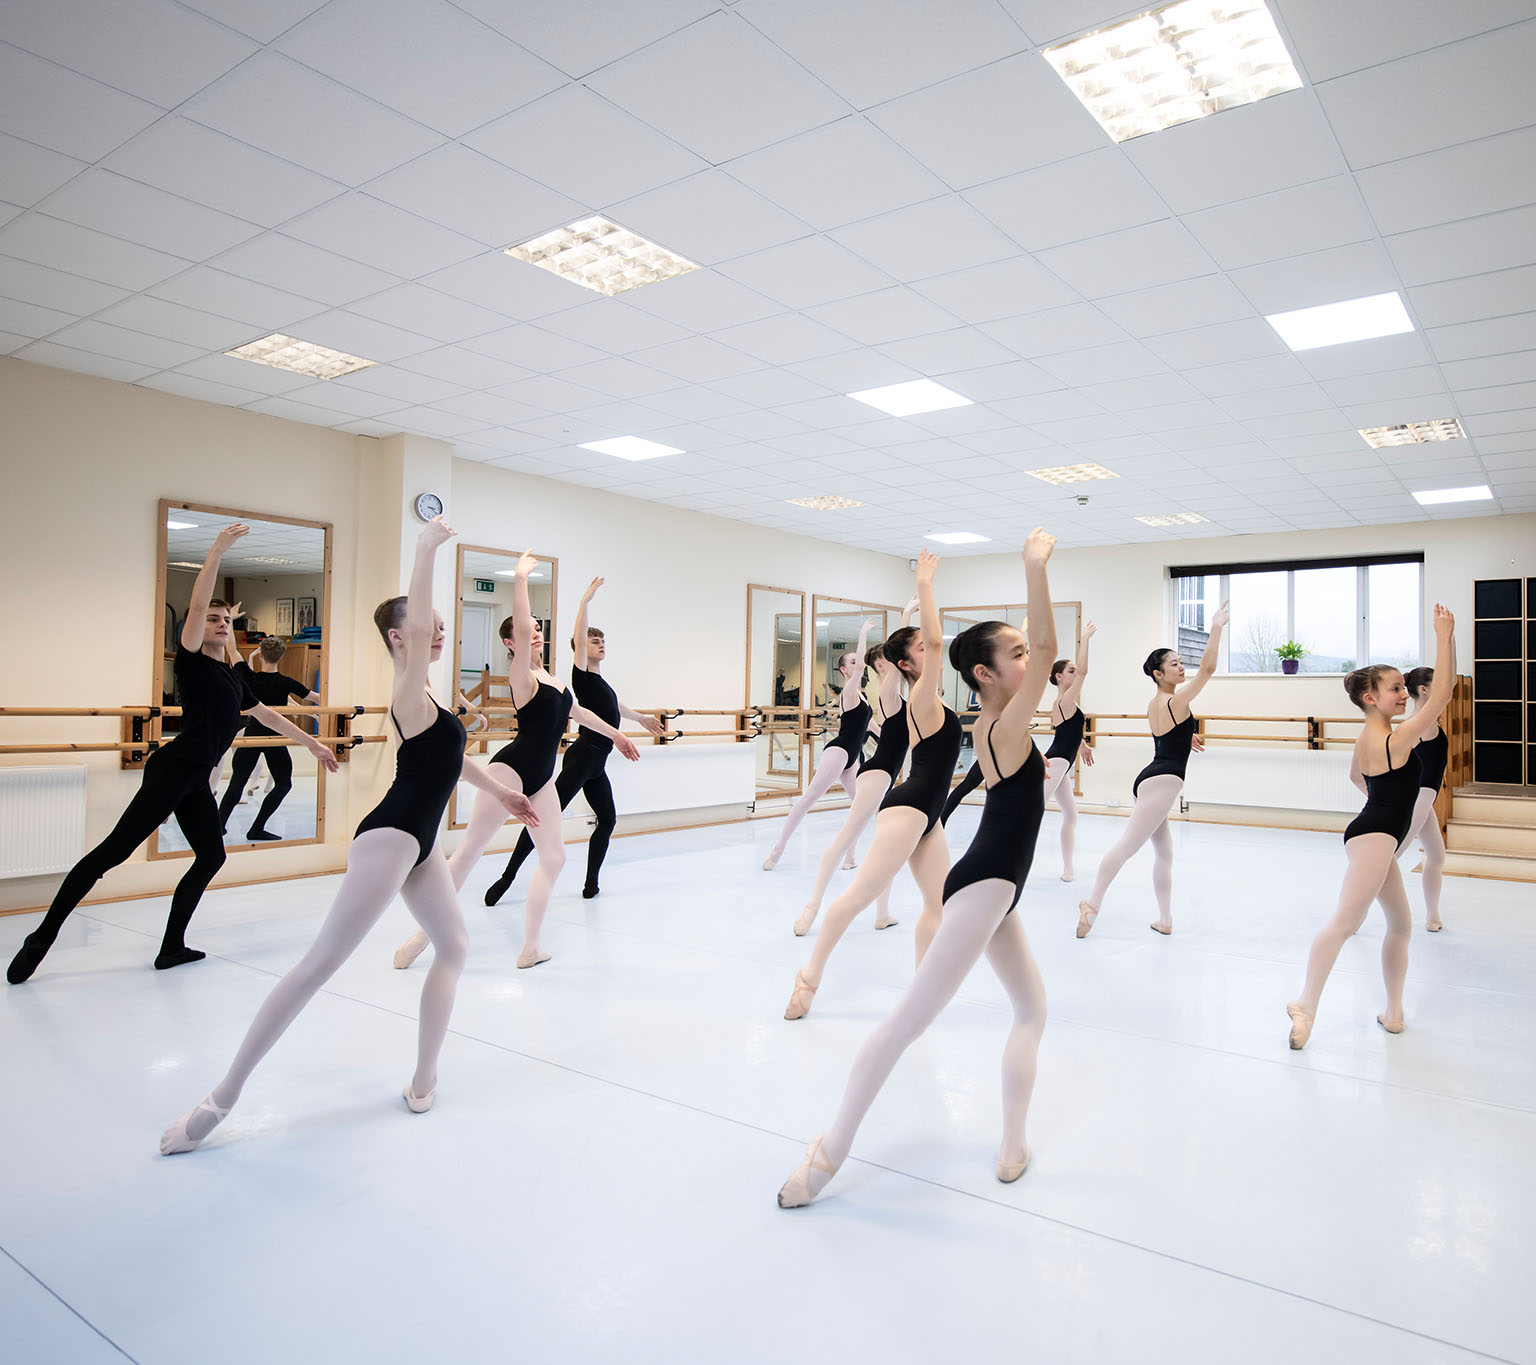 ballet team practicing in sync